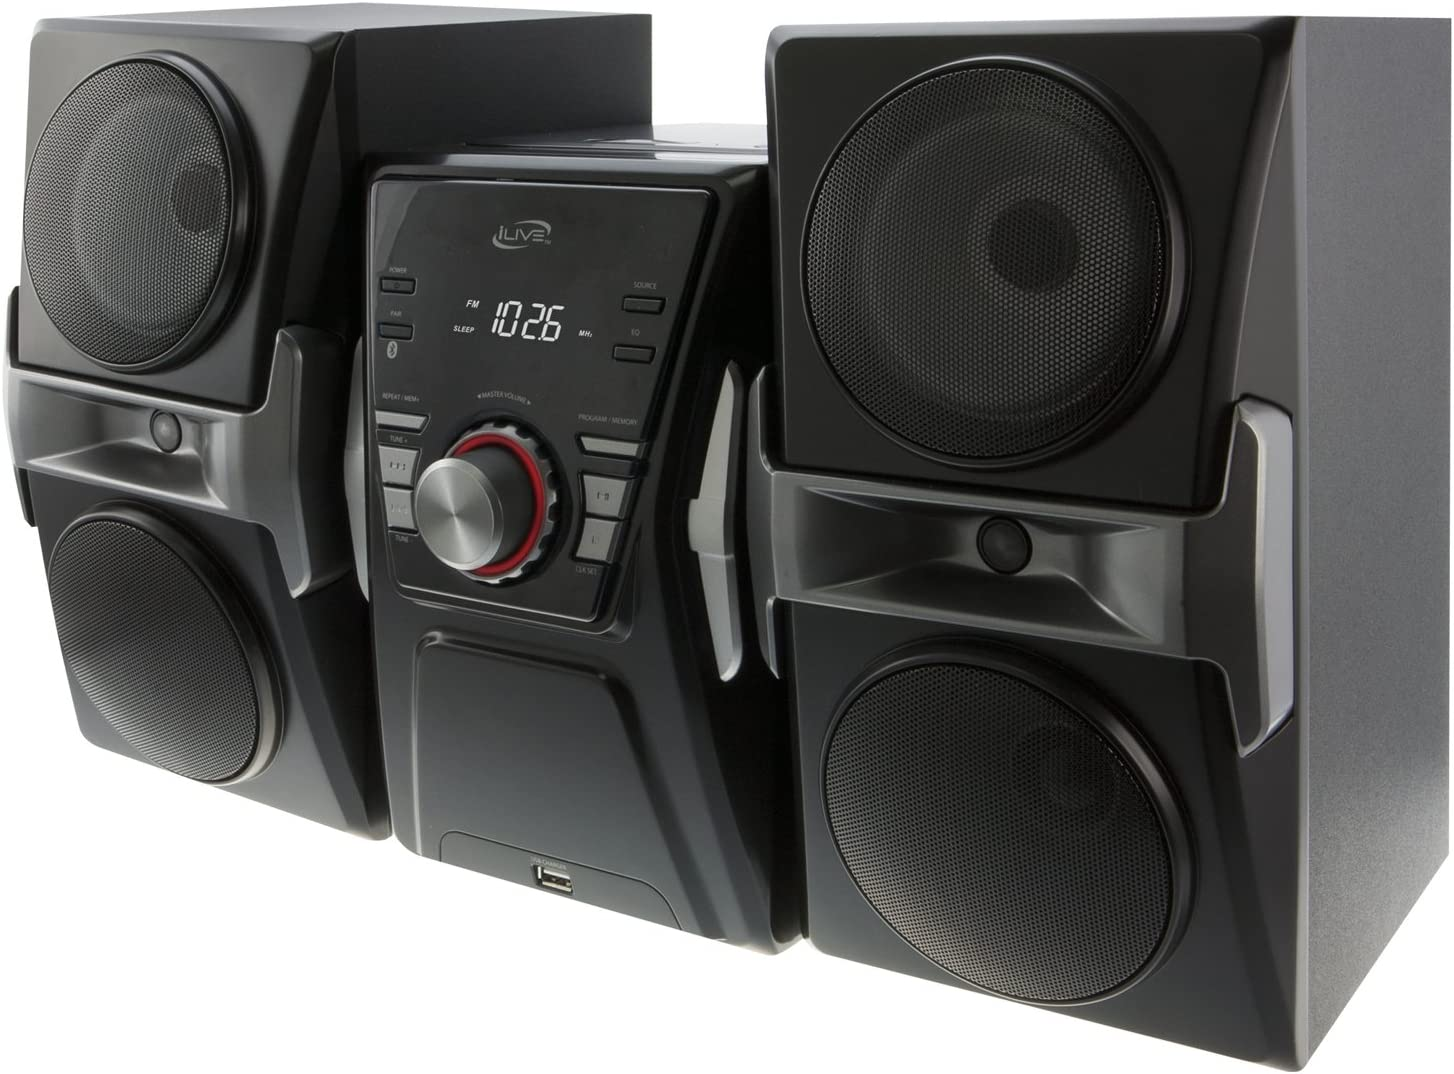 iLive Brand Cheap Sale Venue IHB624B Bluetooth CD and Radio Colo with Music Large discharge sale System Home